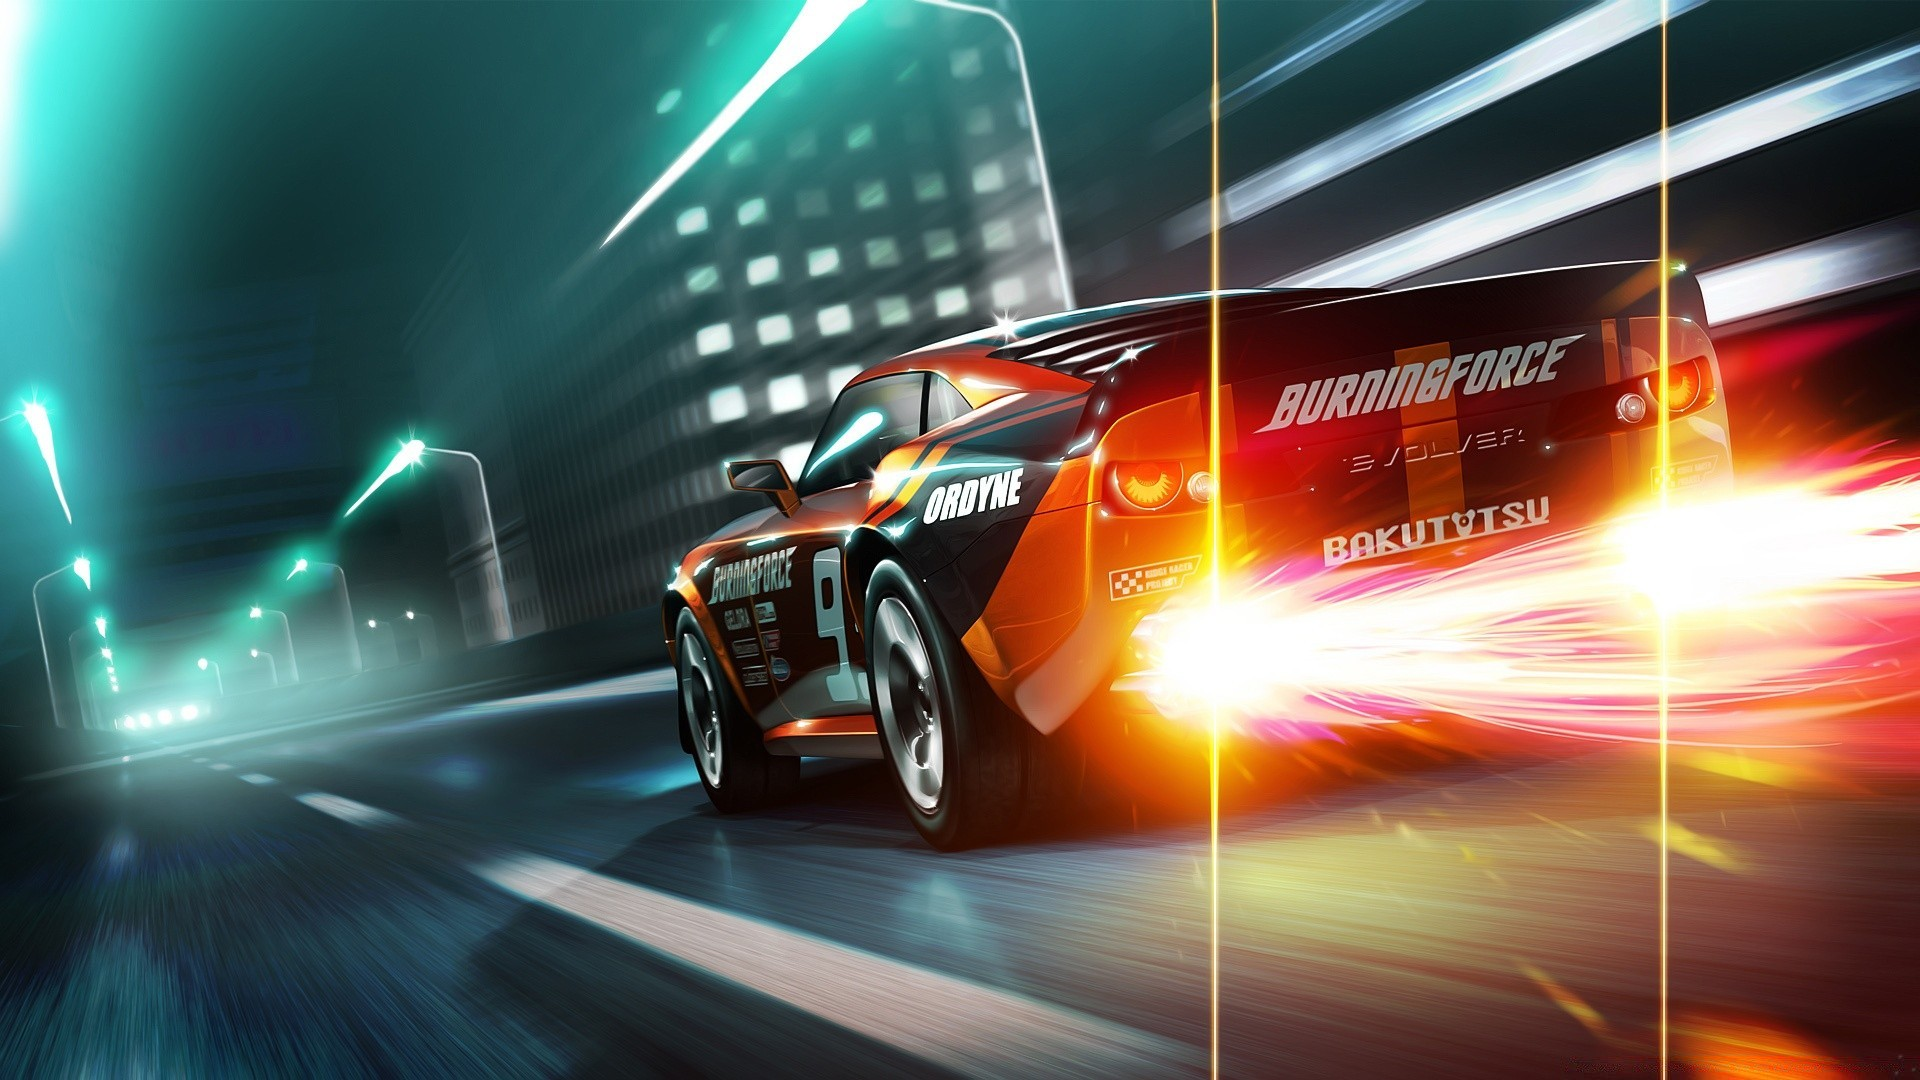 other games blur fast transportation system car traffic speed hurry motion tunnel road action highway